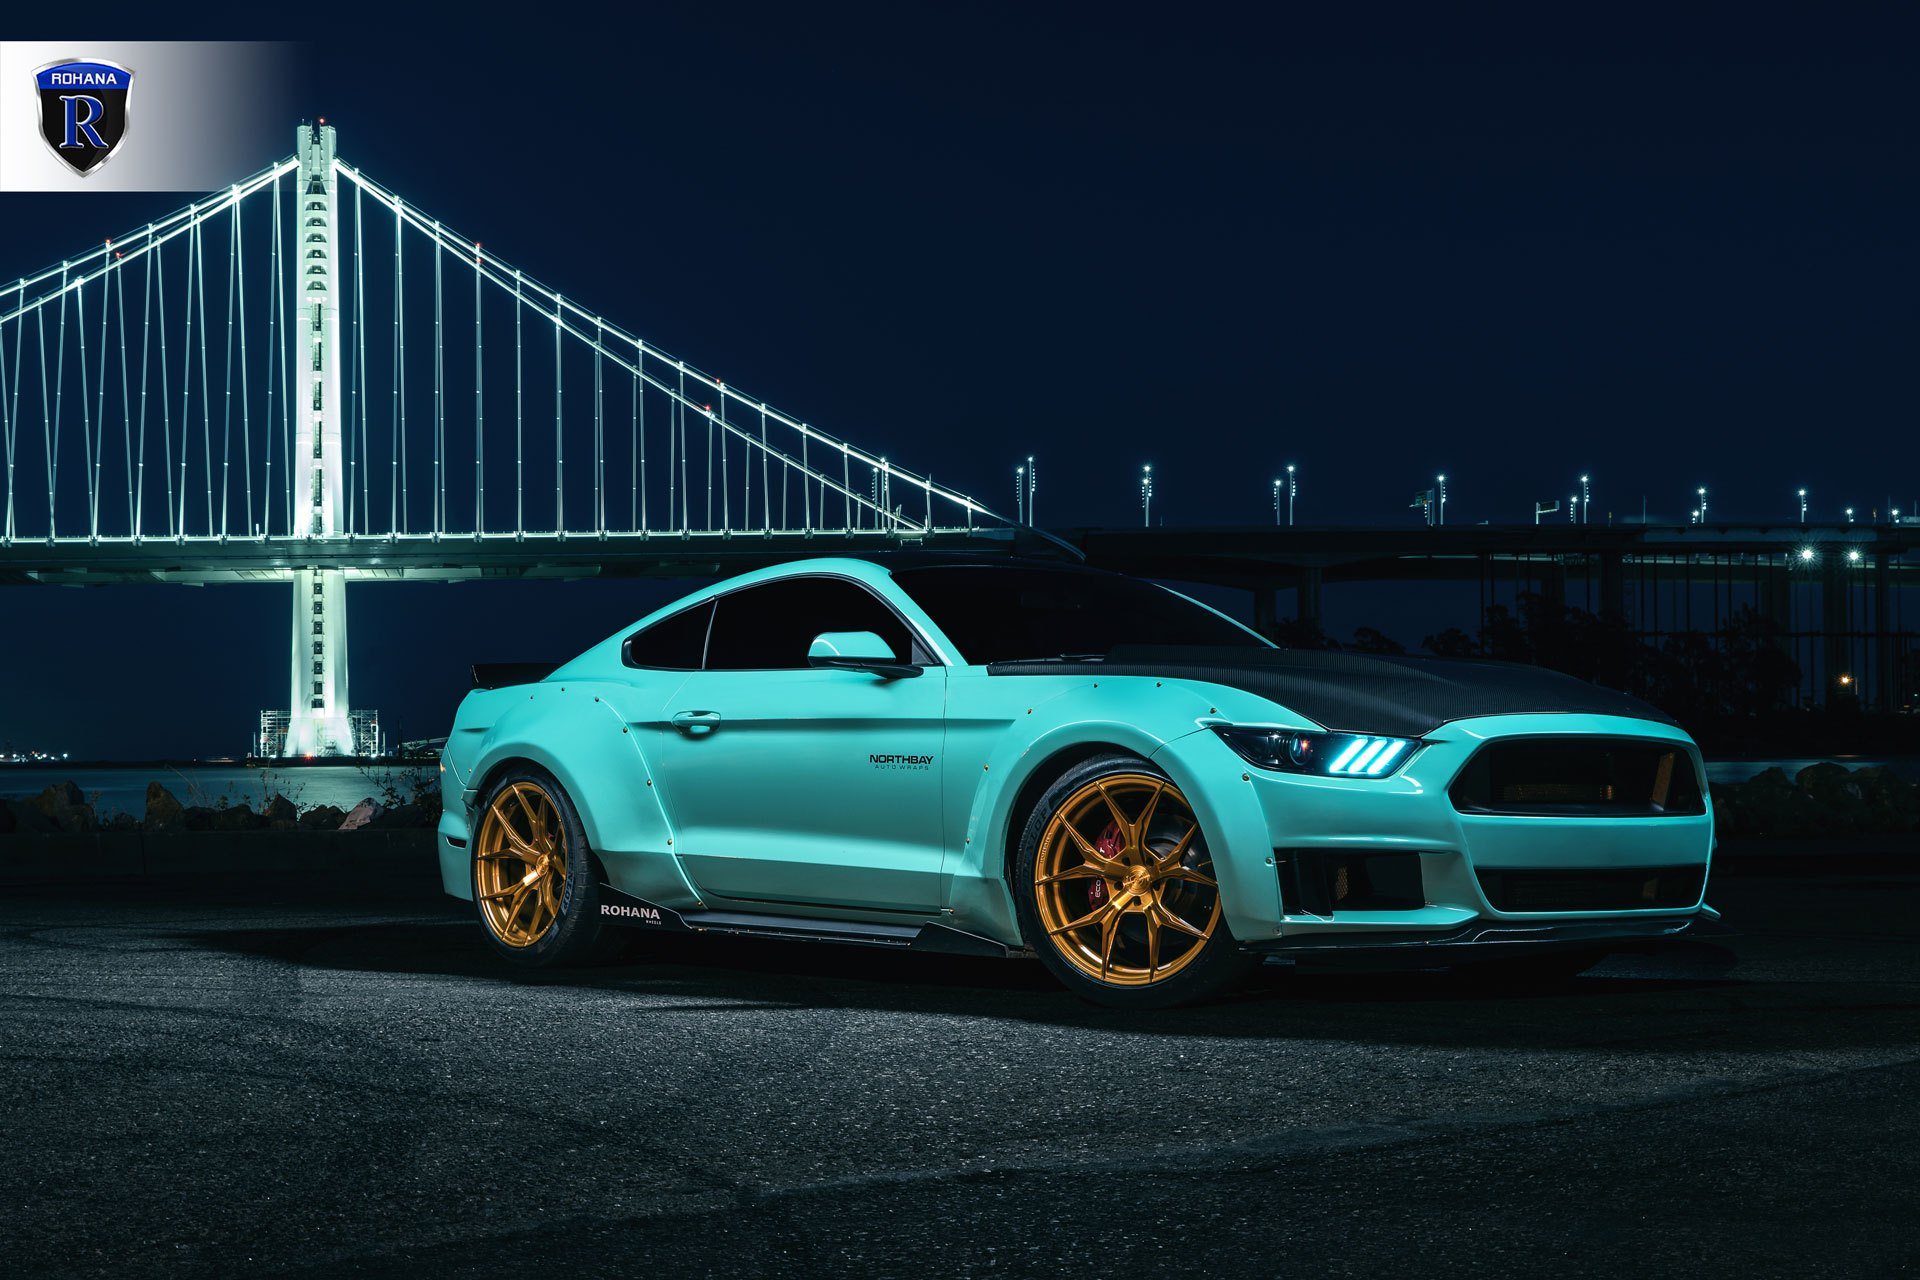 Fresh mint ford mustang with a body kit photo by rohana wheels